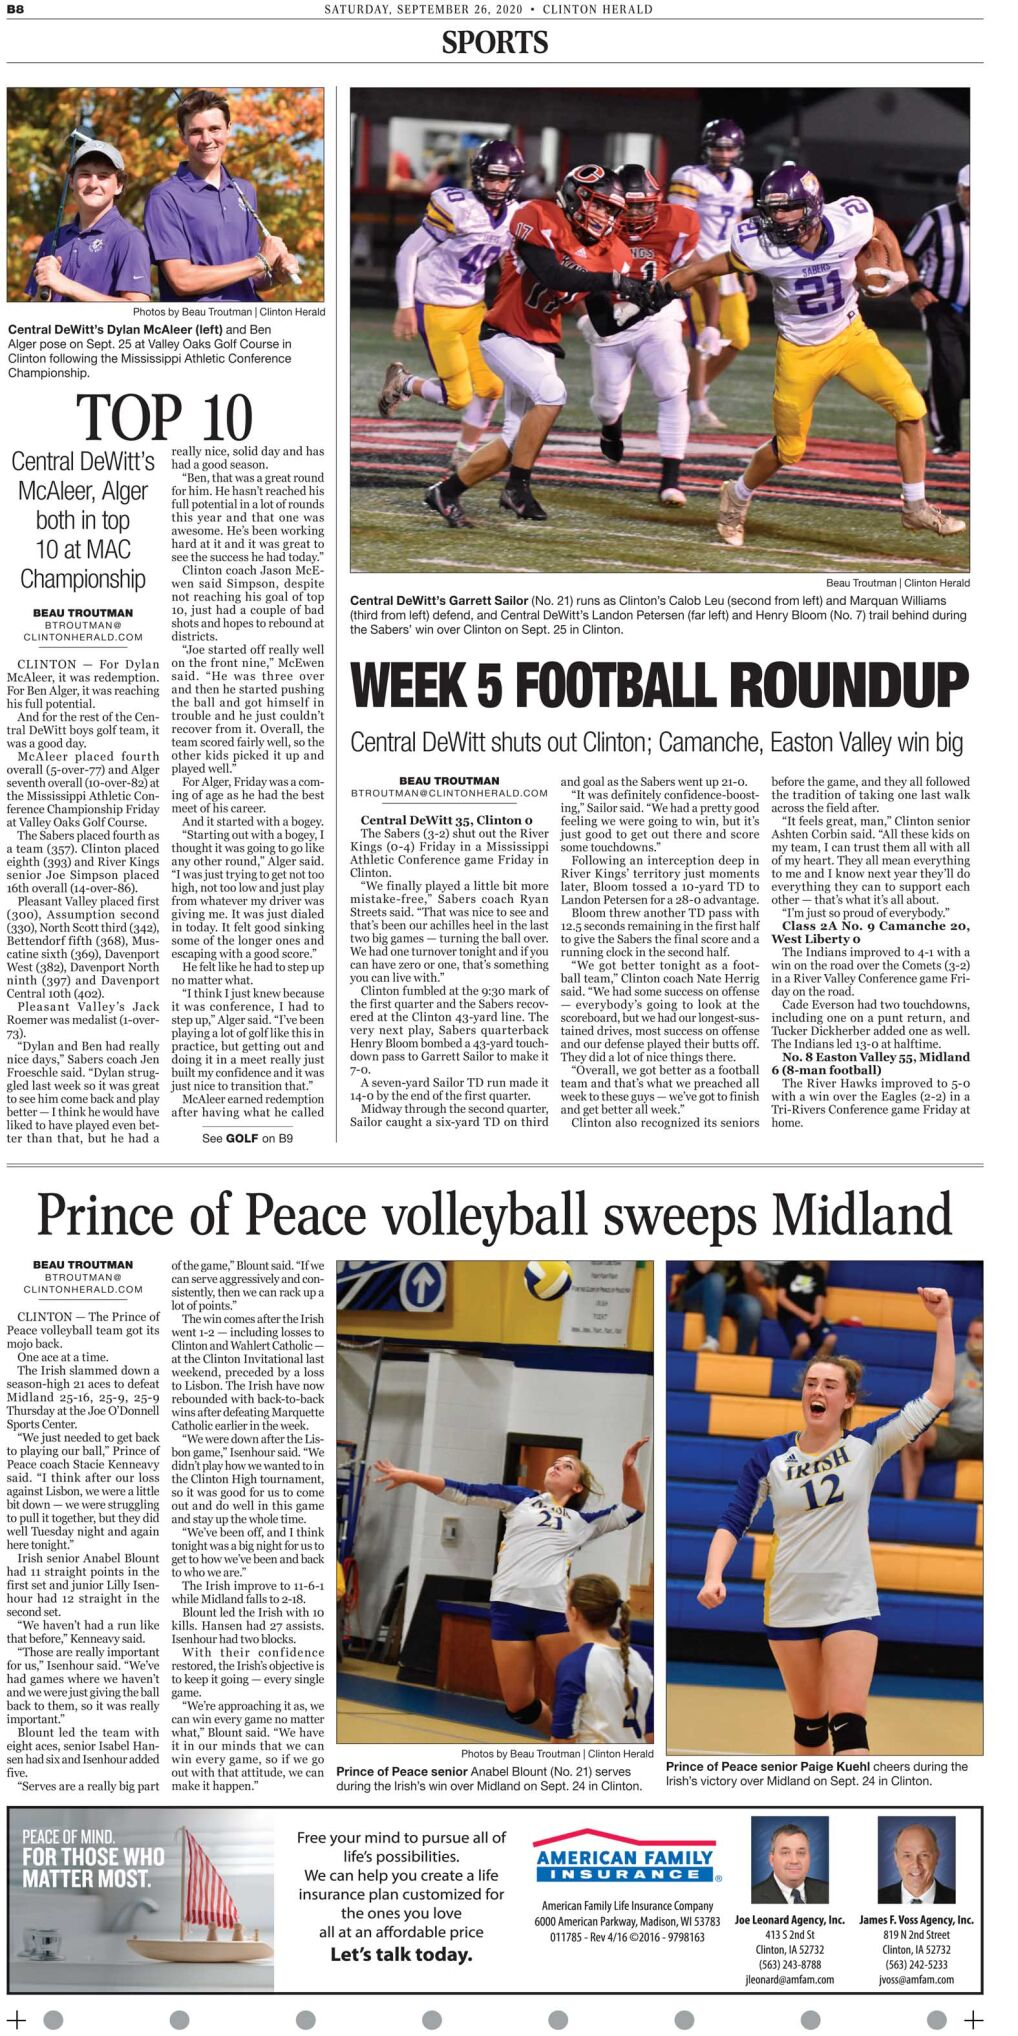 September 26, 2020 front sports page